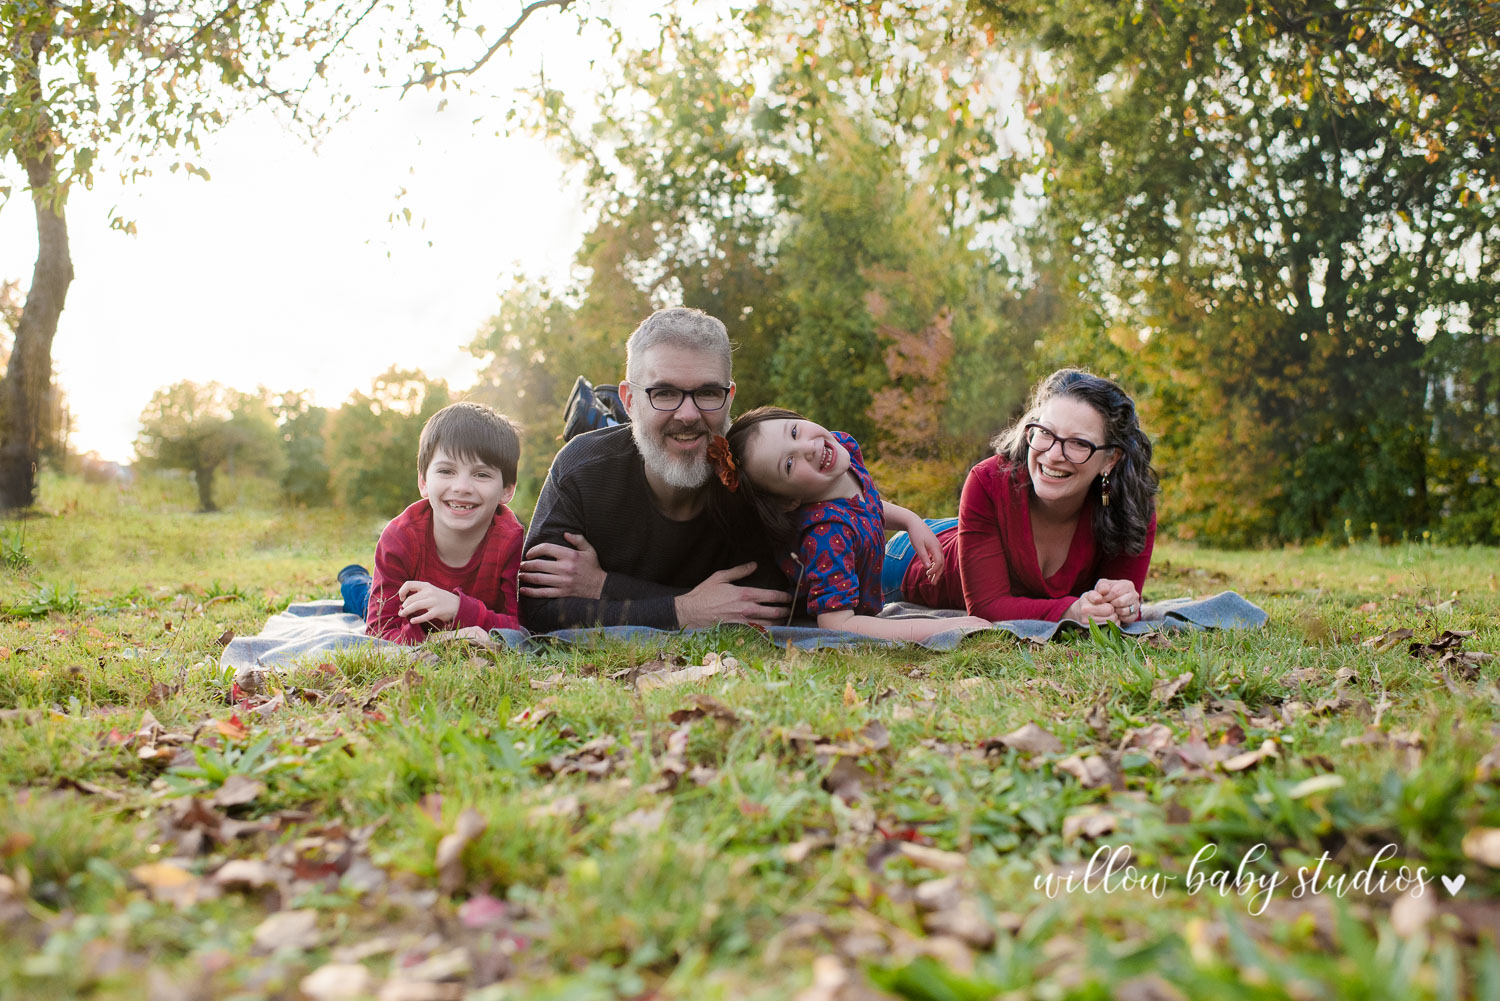 wbs-march-family-30.jpg